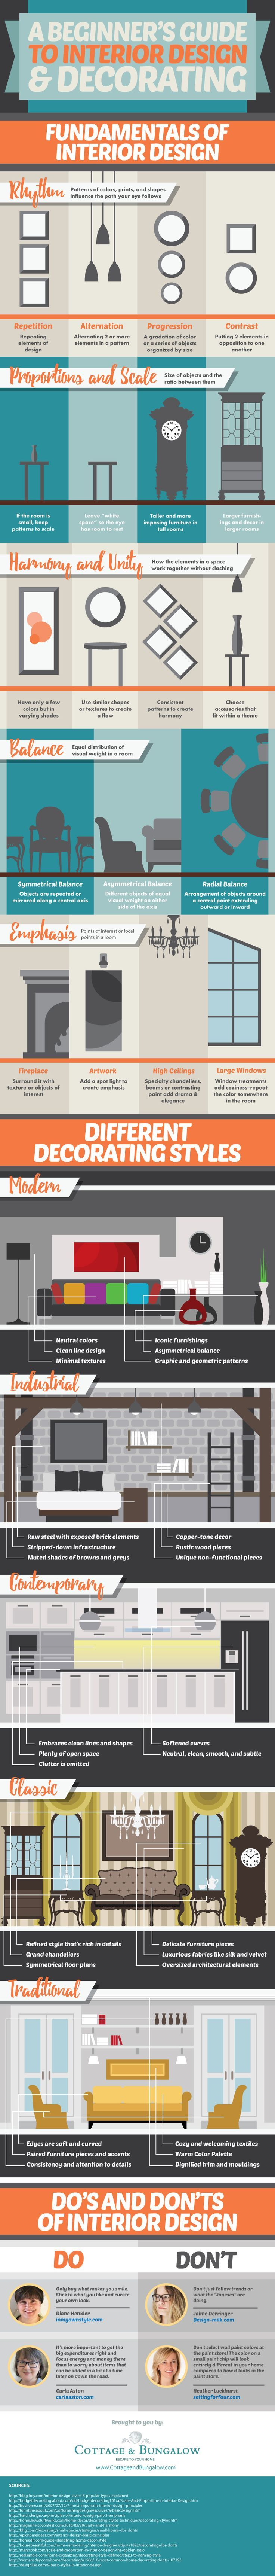 The Beginners Guide To Interior Design And Decorating Settingforfou